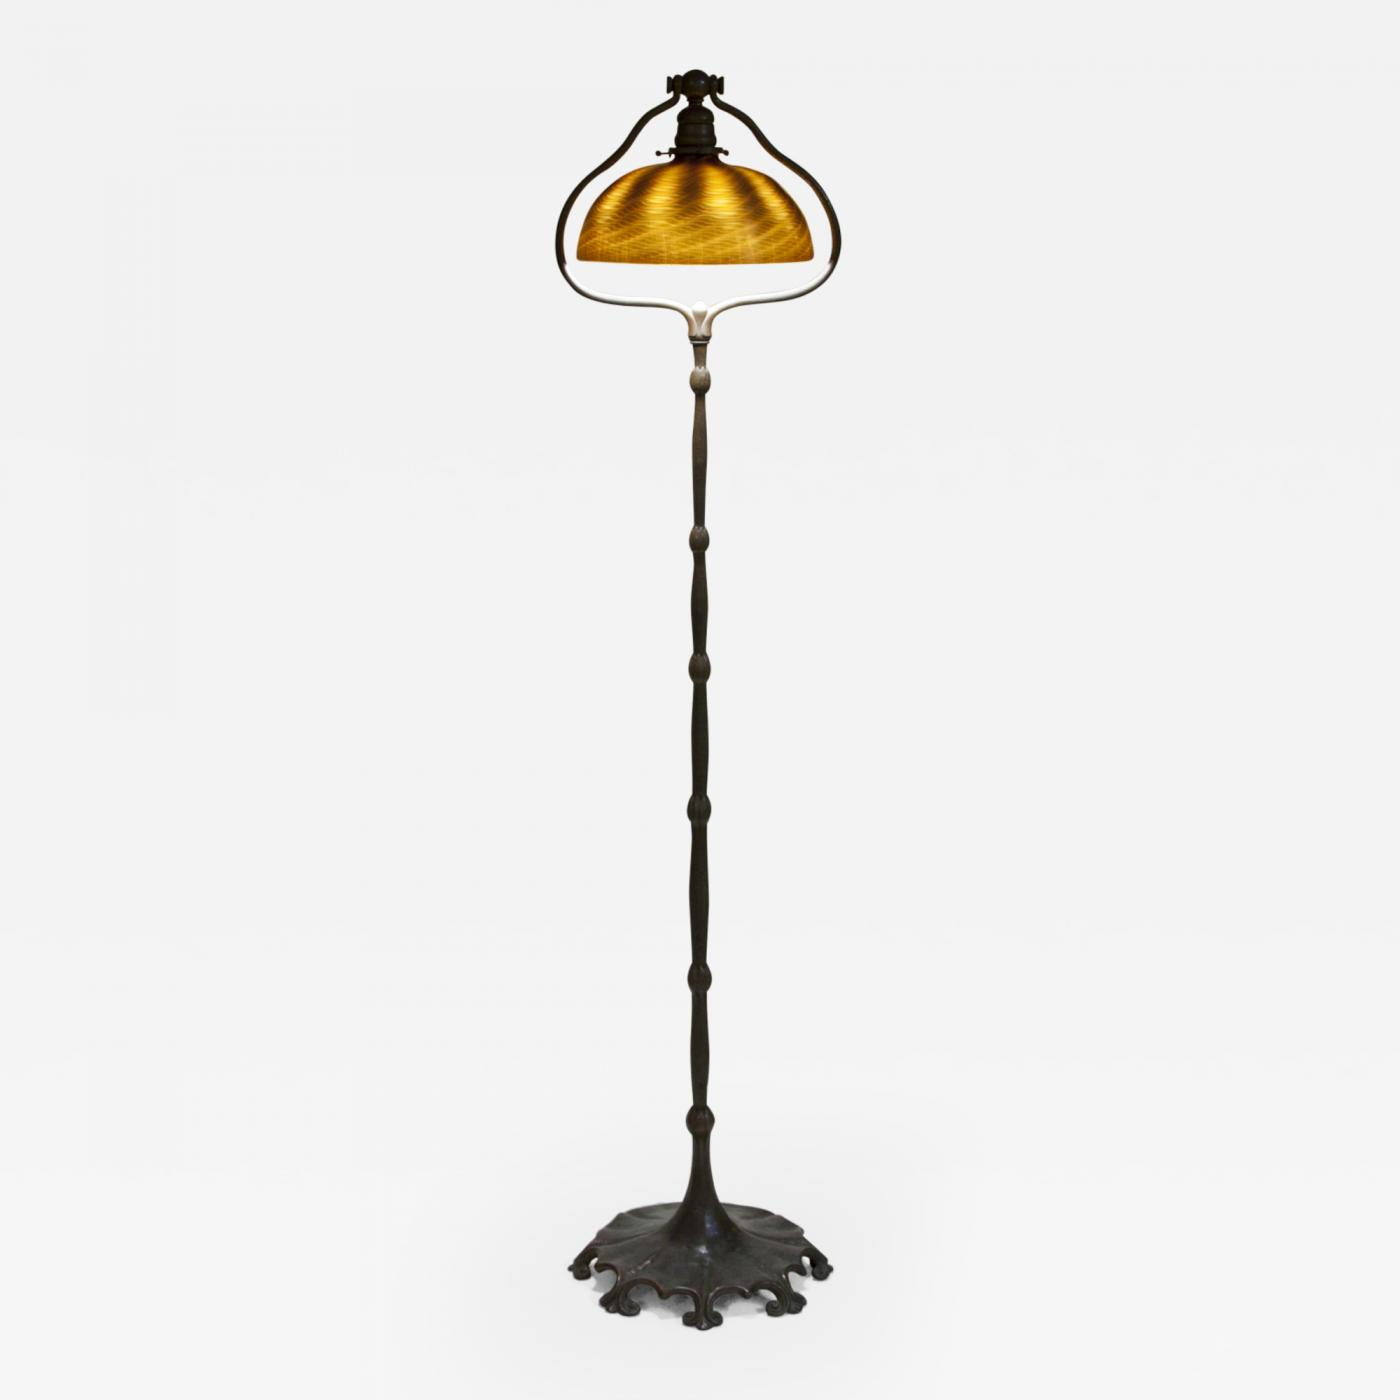 Tiffany Studios - Favrile Glass and Bronze Harp Floor Lamp